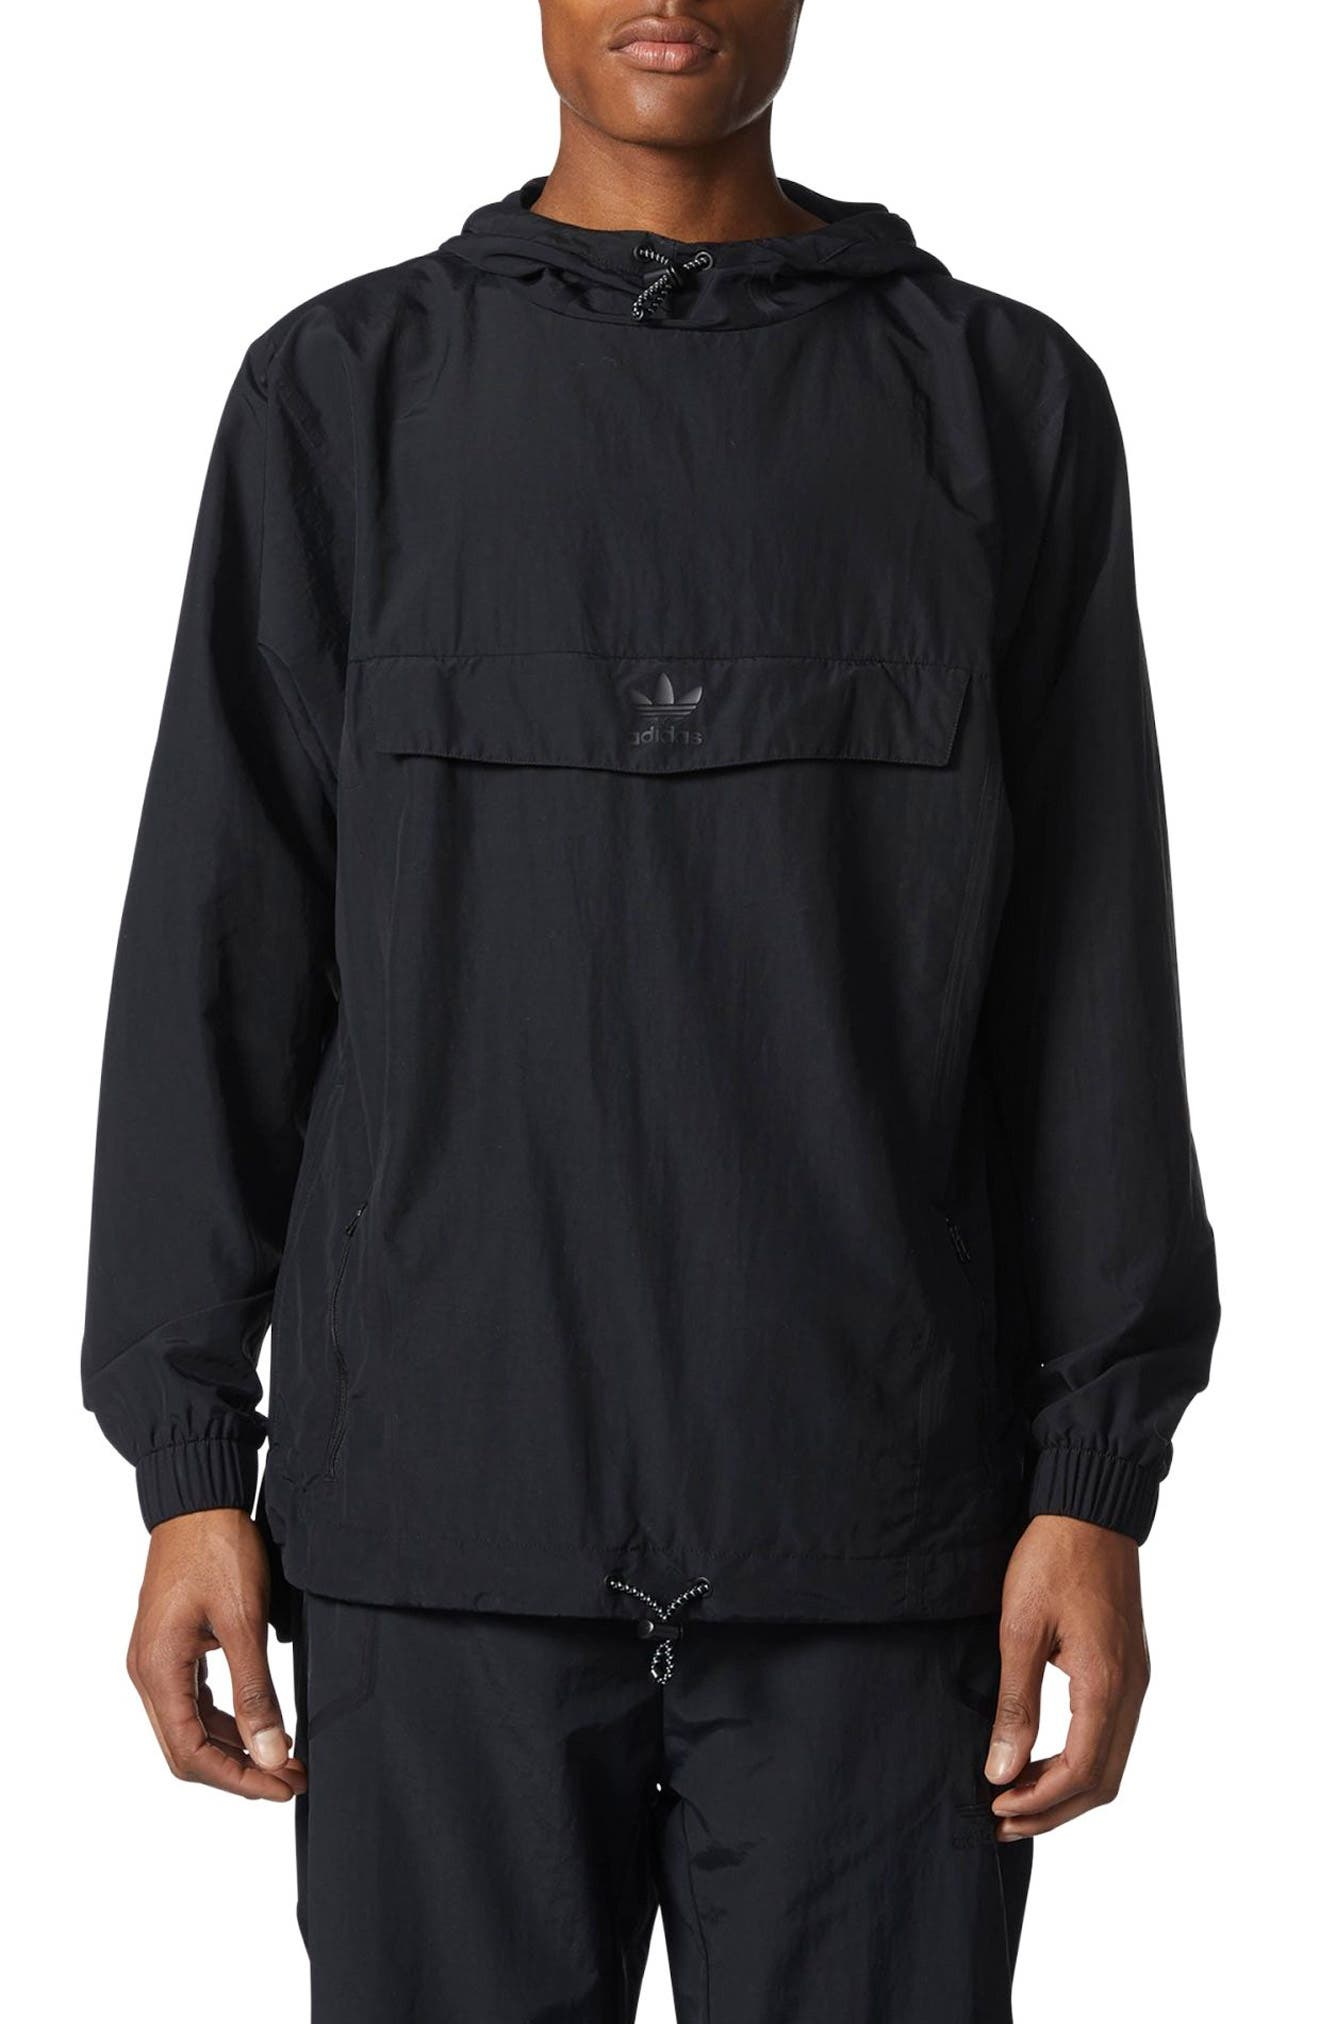 Alternate Image 1 Selected - adidas Originals Taped Anorak